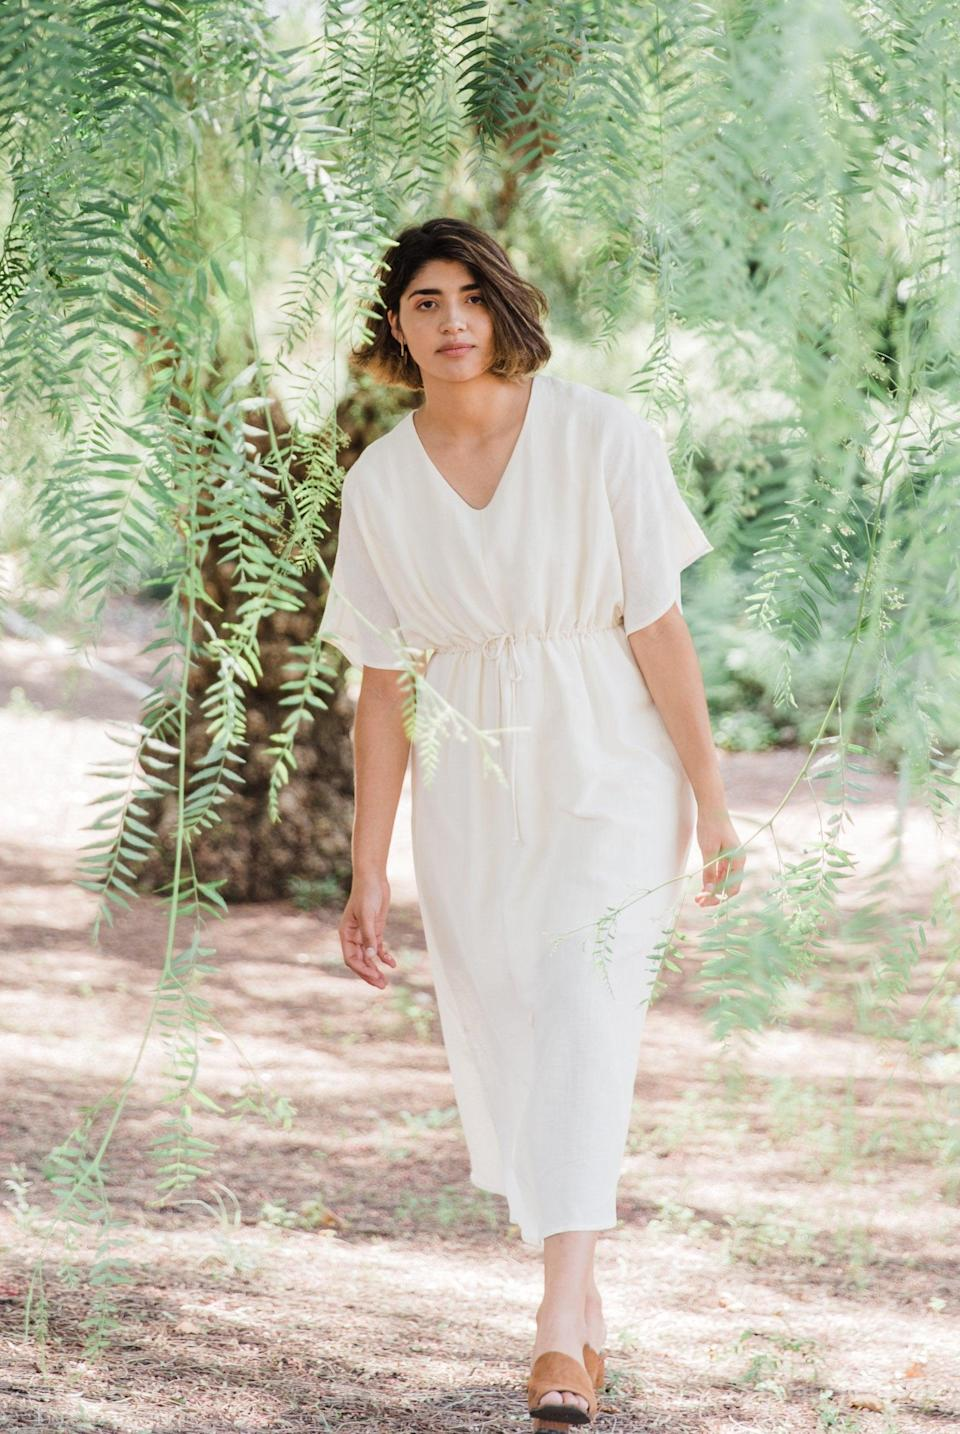 "<br> <br> <strong>Gracemade</strong> Beloved Sustainable Dress, $, available at <a href=""https://go.skimresources.com/?id=30283X879131&url=https%3A%2F%2Fwww.thegracemade.com%2Fcollections%2Fgracemade-collection%2Fproducts%2Fbeloved-dress%3Fvariant%3D20072681078880"" rel=""nofollow noopener"" target=""_blank"" data-ylk=""slk:Gracemade"" class=""link rapid-noclick-resp"">Gracemade</a>"